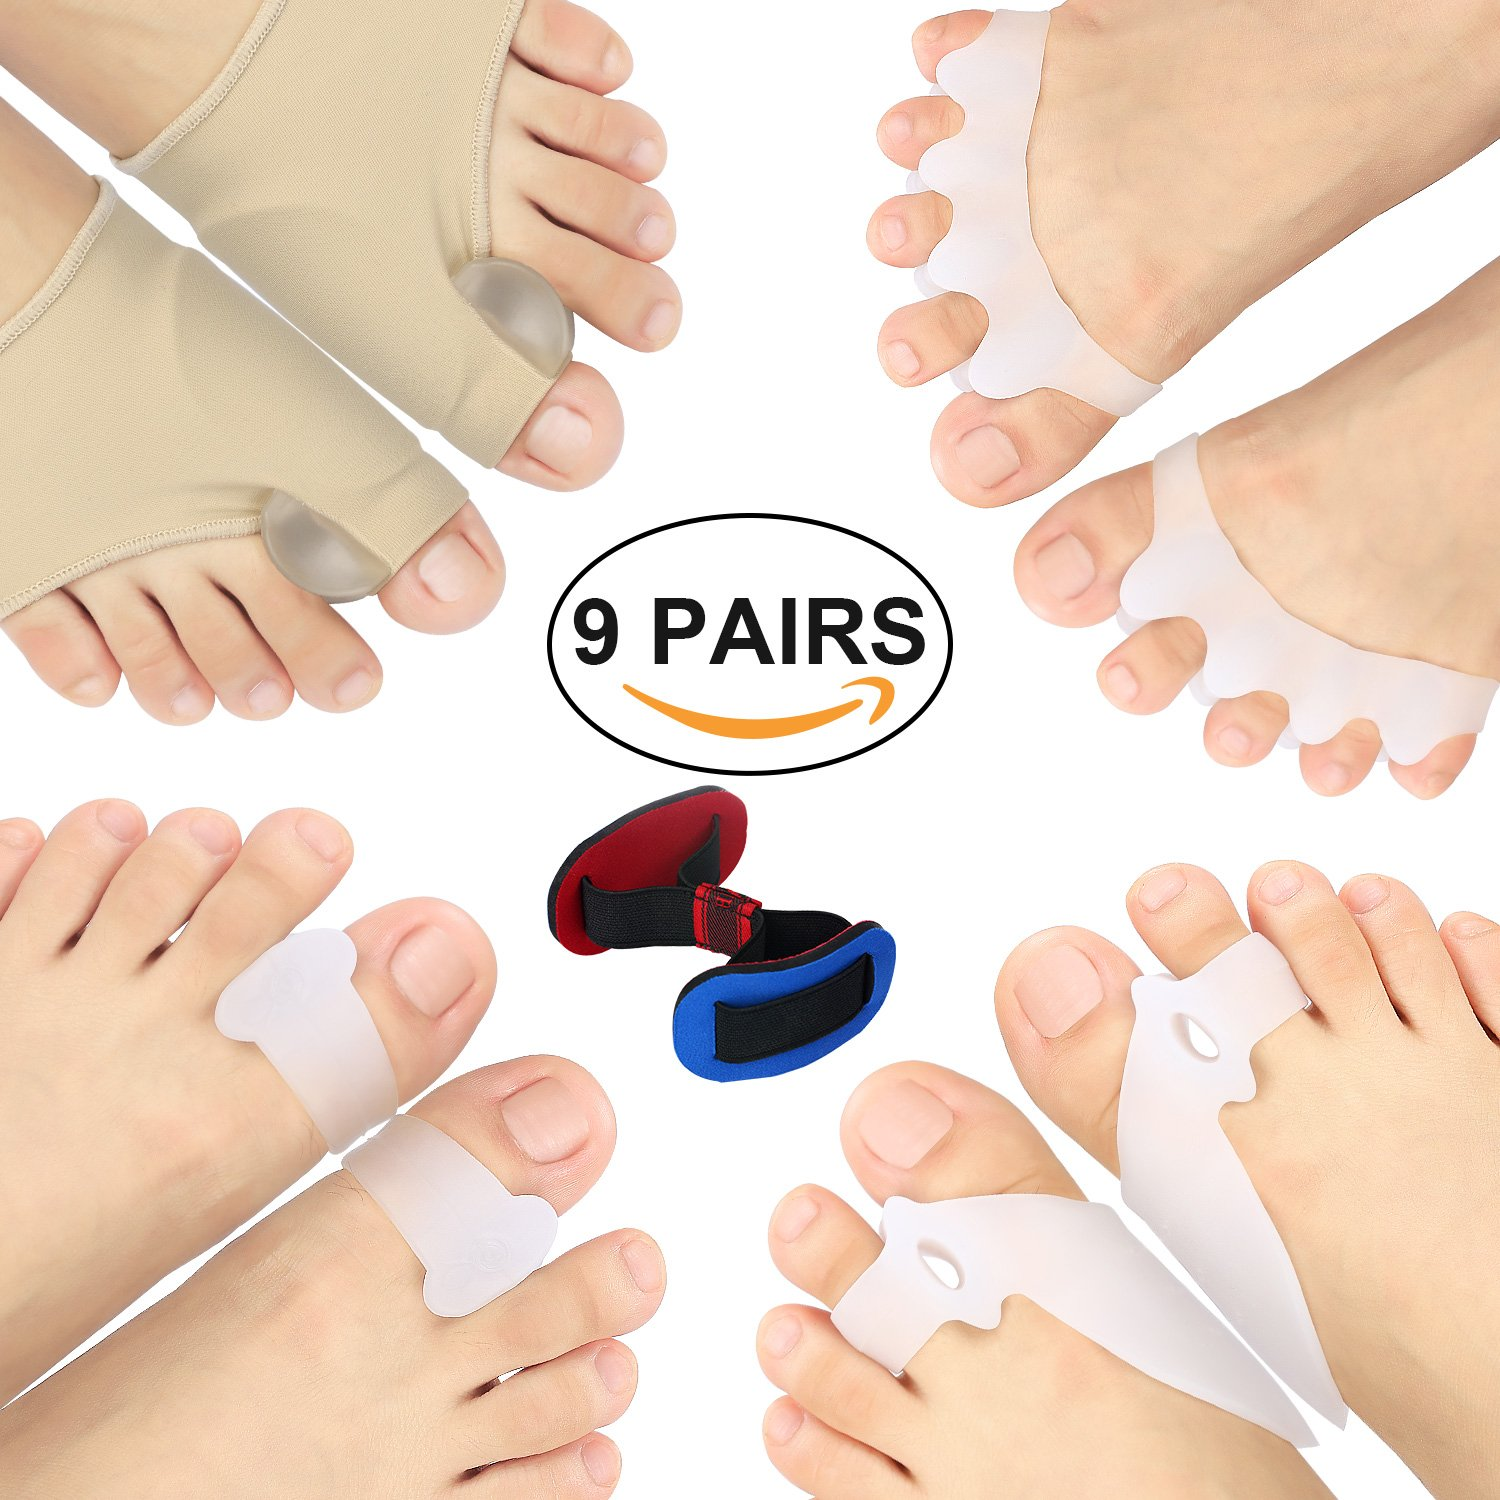 Bunion Corrector, Toe Splint and Bunion Relief Protector Sleeves Kit for Cure Pain in Big Toe Joint, Tailors Bunion, Hallux Valgus, Hammer Toe, Toe Separators Spacers Straighteners Splint Aid Surgery by UTinter